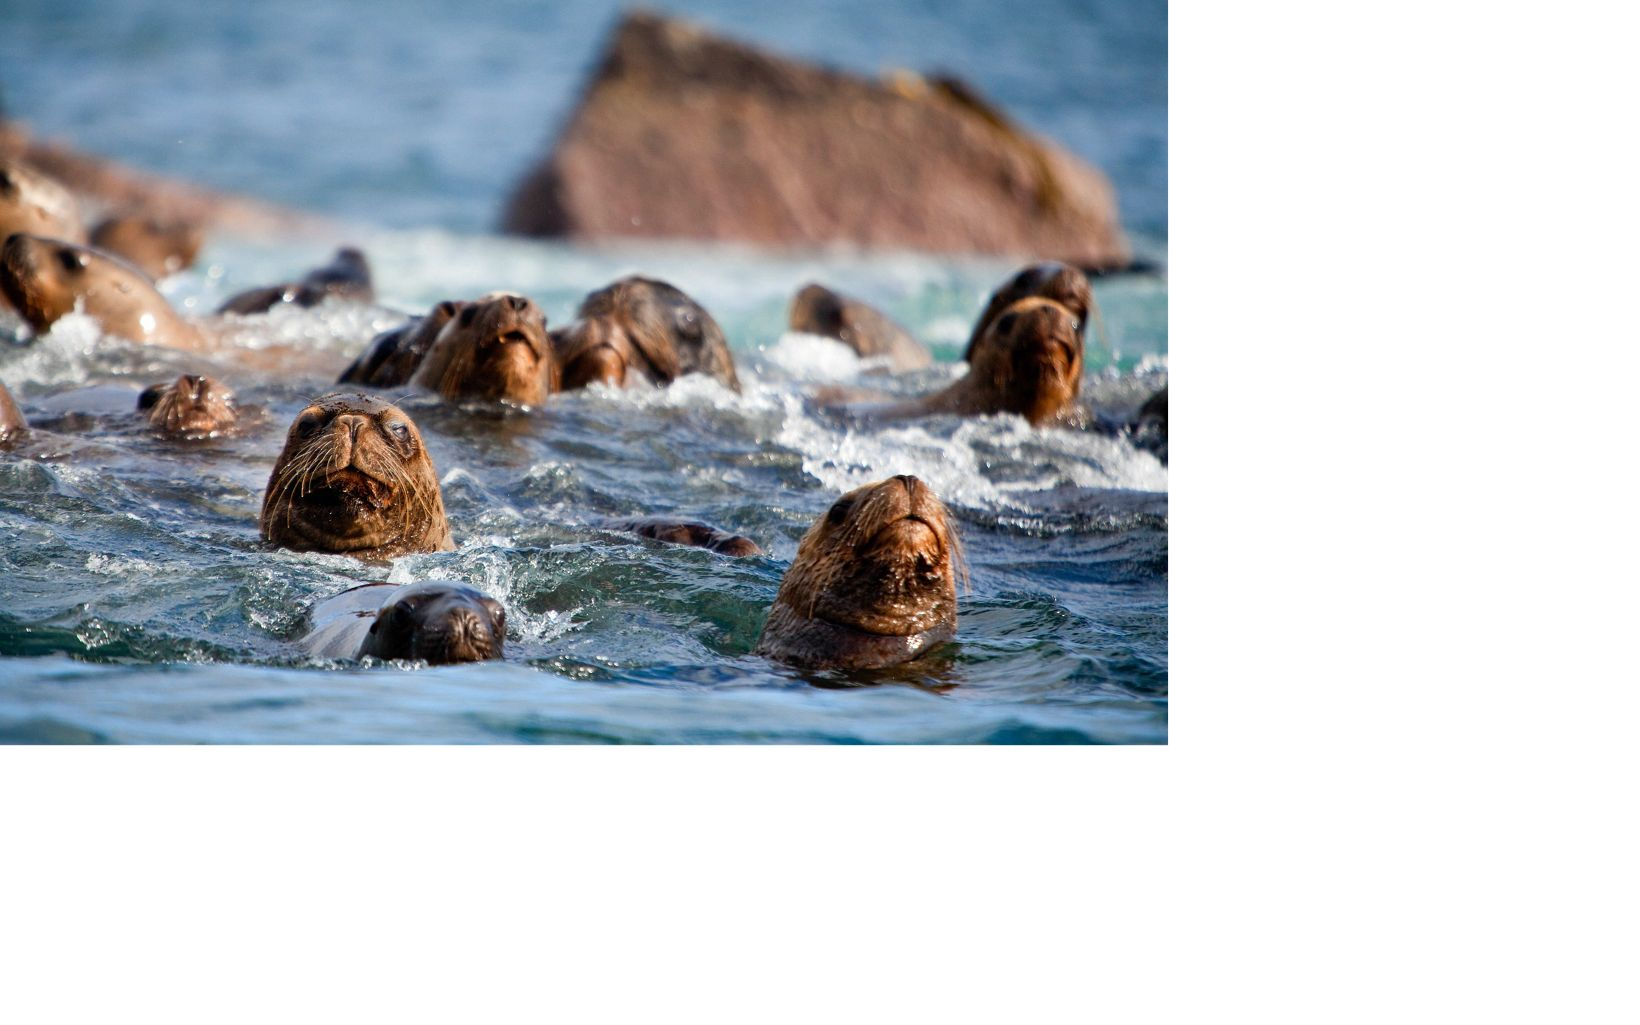 Detail of sea lions, Valdivia Coastal Reserve, Valdivia, Chile.